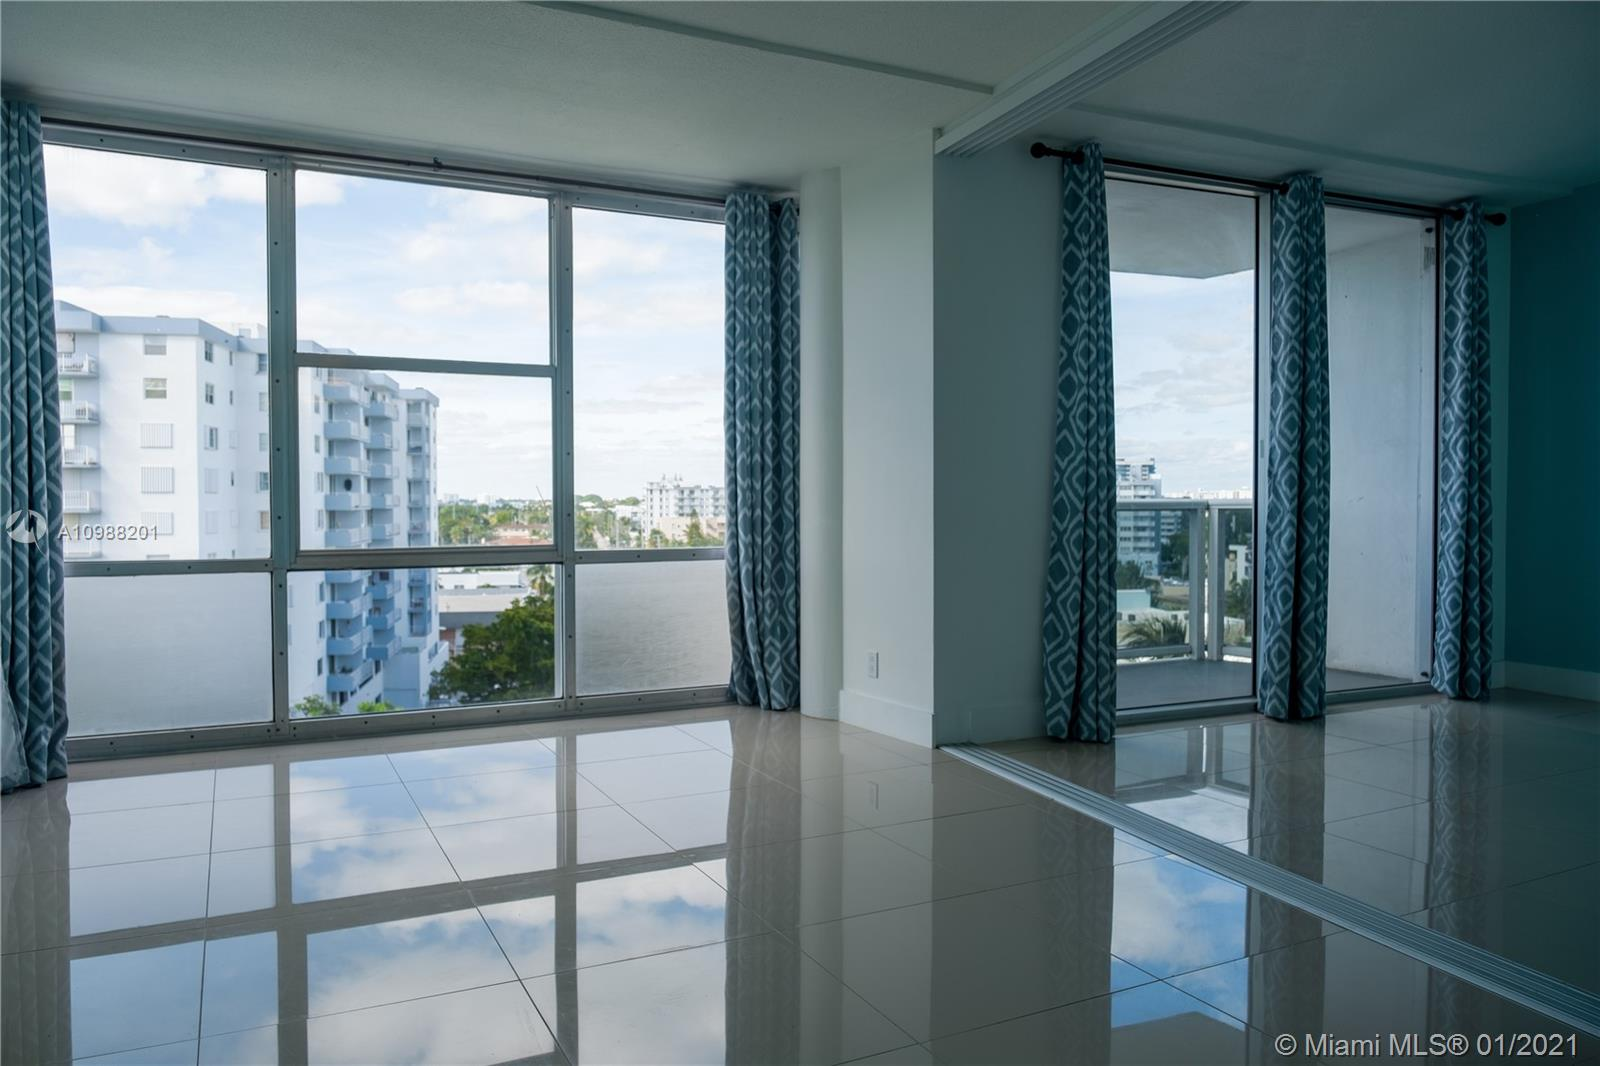 900 Bay Dr # 711, Miami Beach, Florida 33141, 2 Bedrooms Bedrooms, ,2 BathroomsBathrooms,Residential,For Sale,900 Bay Dr # 711,A10988201